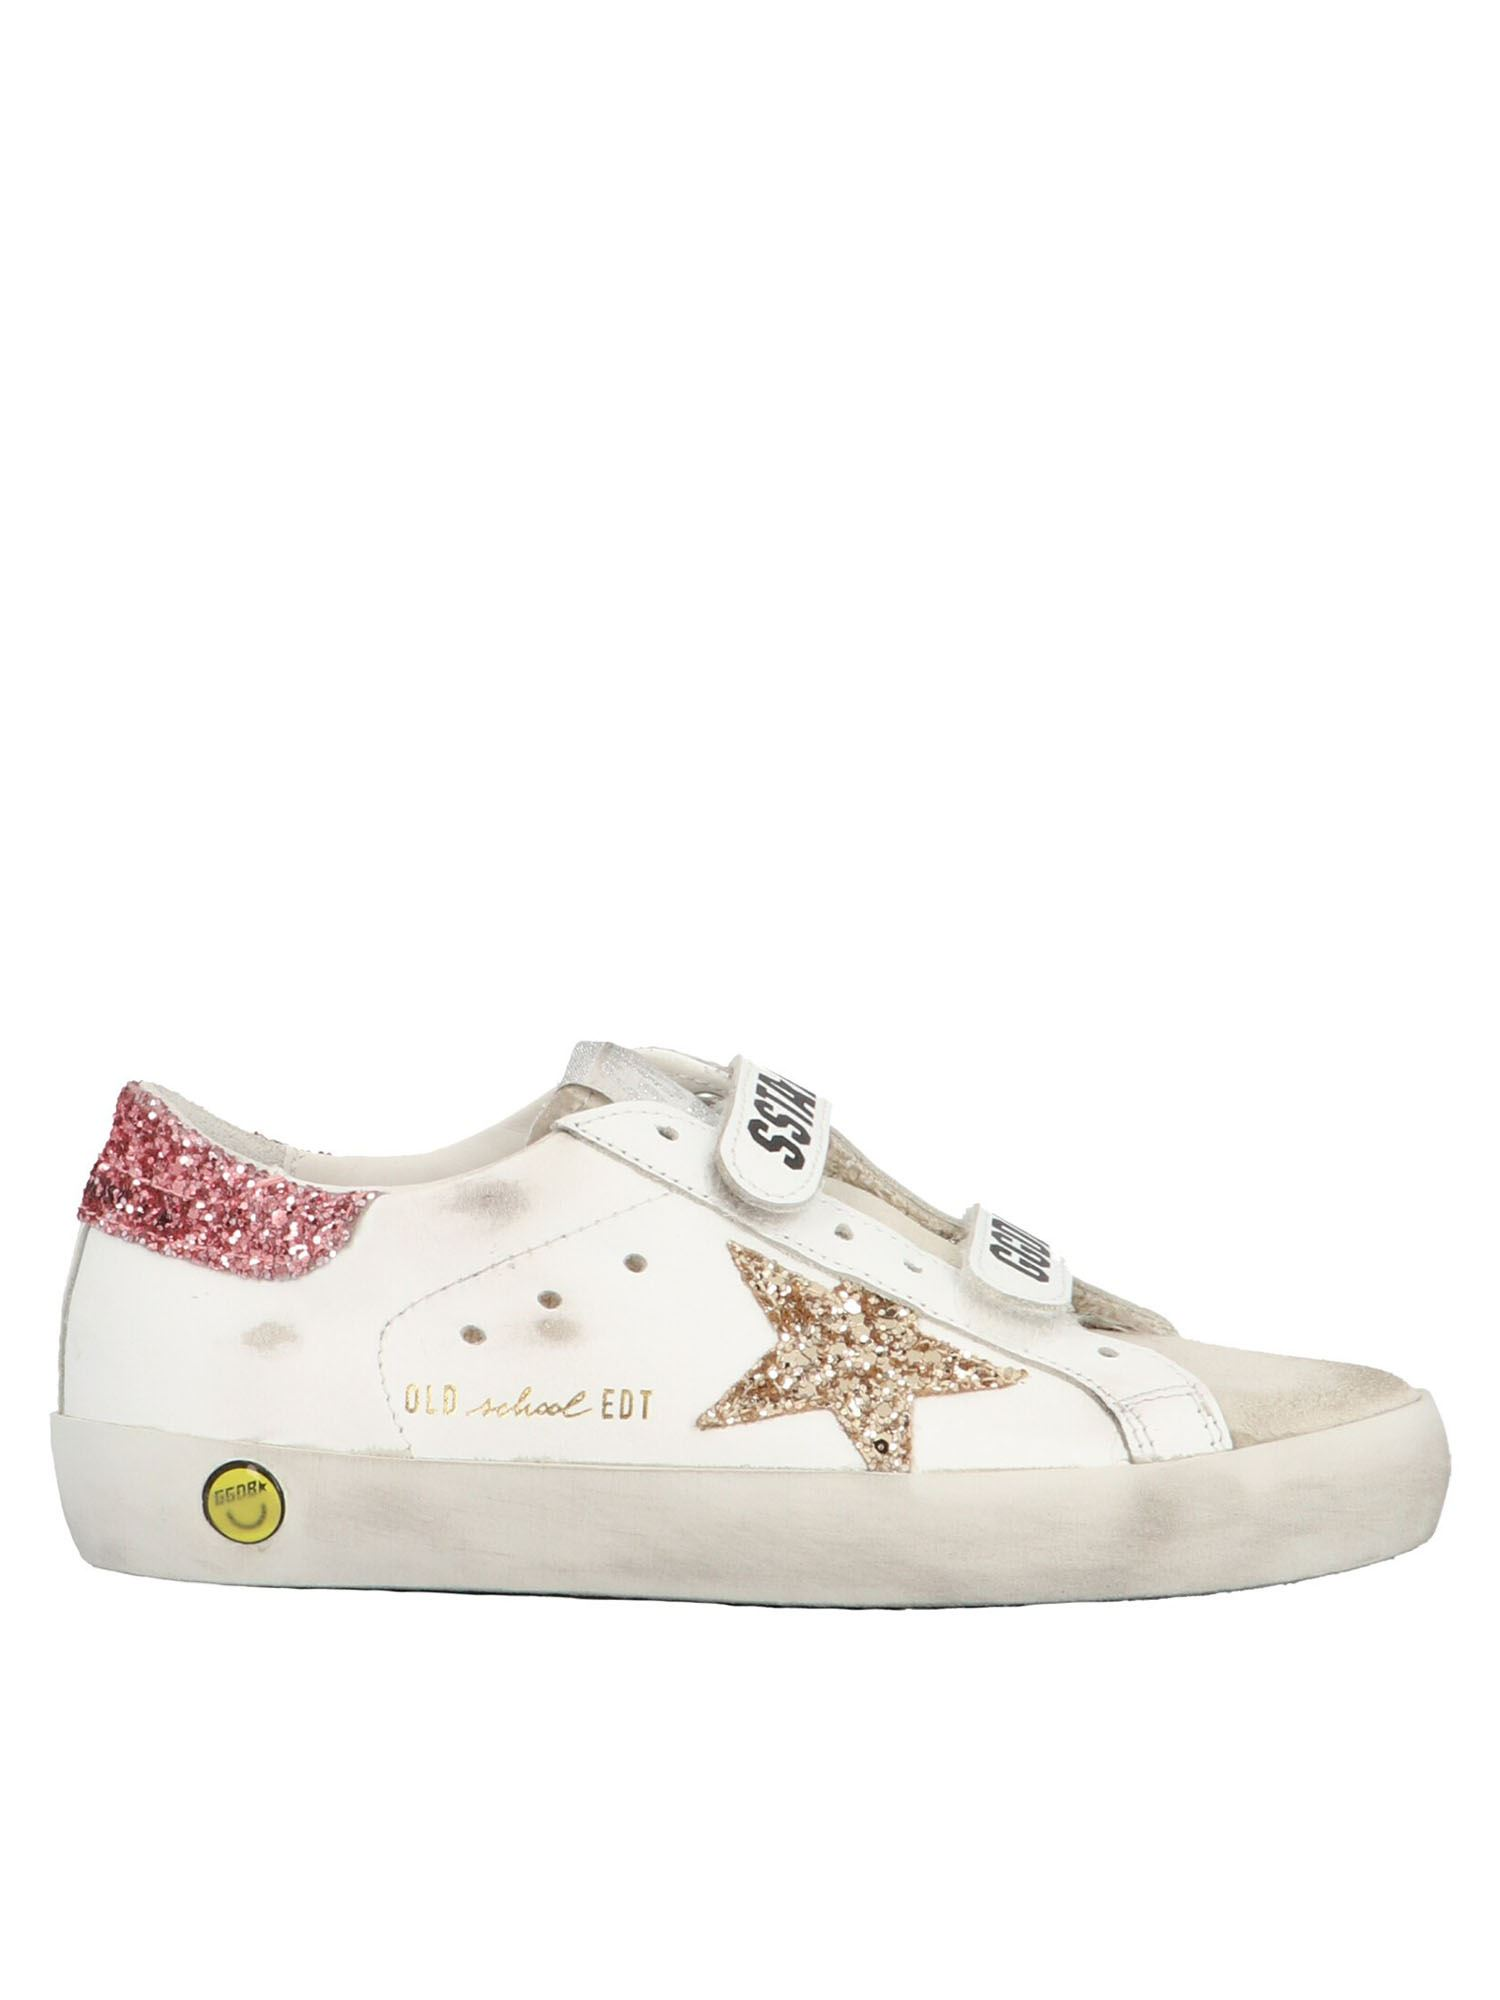 GOLDEN GOOSE OLD SCHOOL SNEAKERS IN WHITE